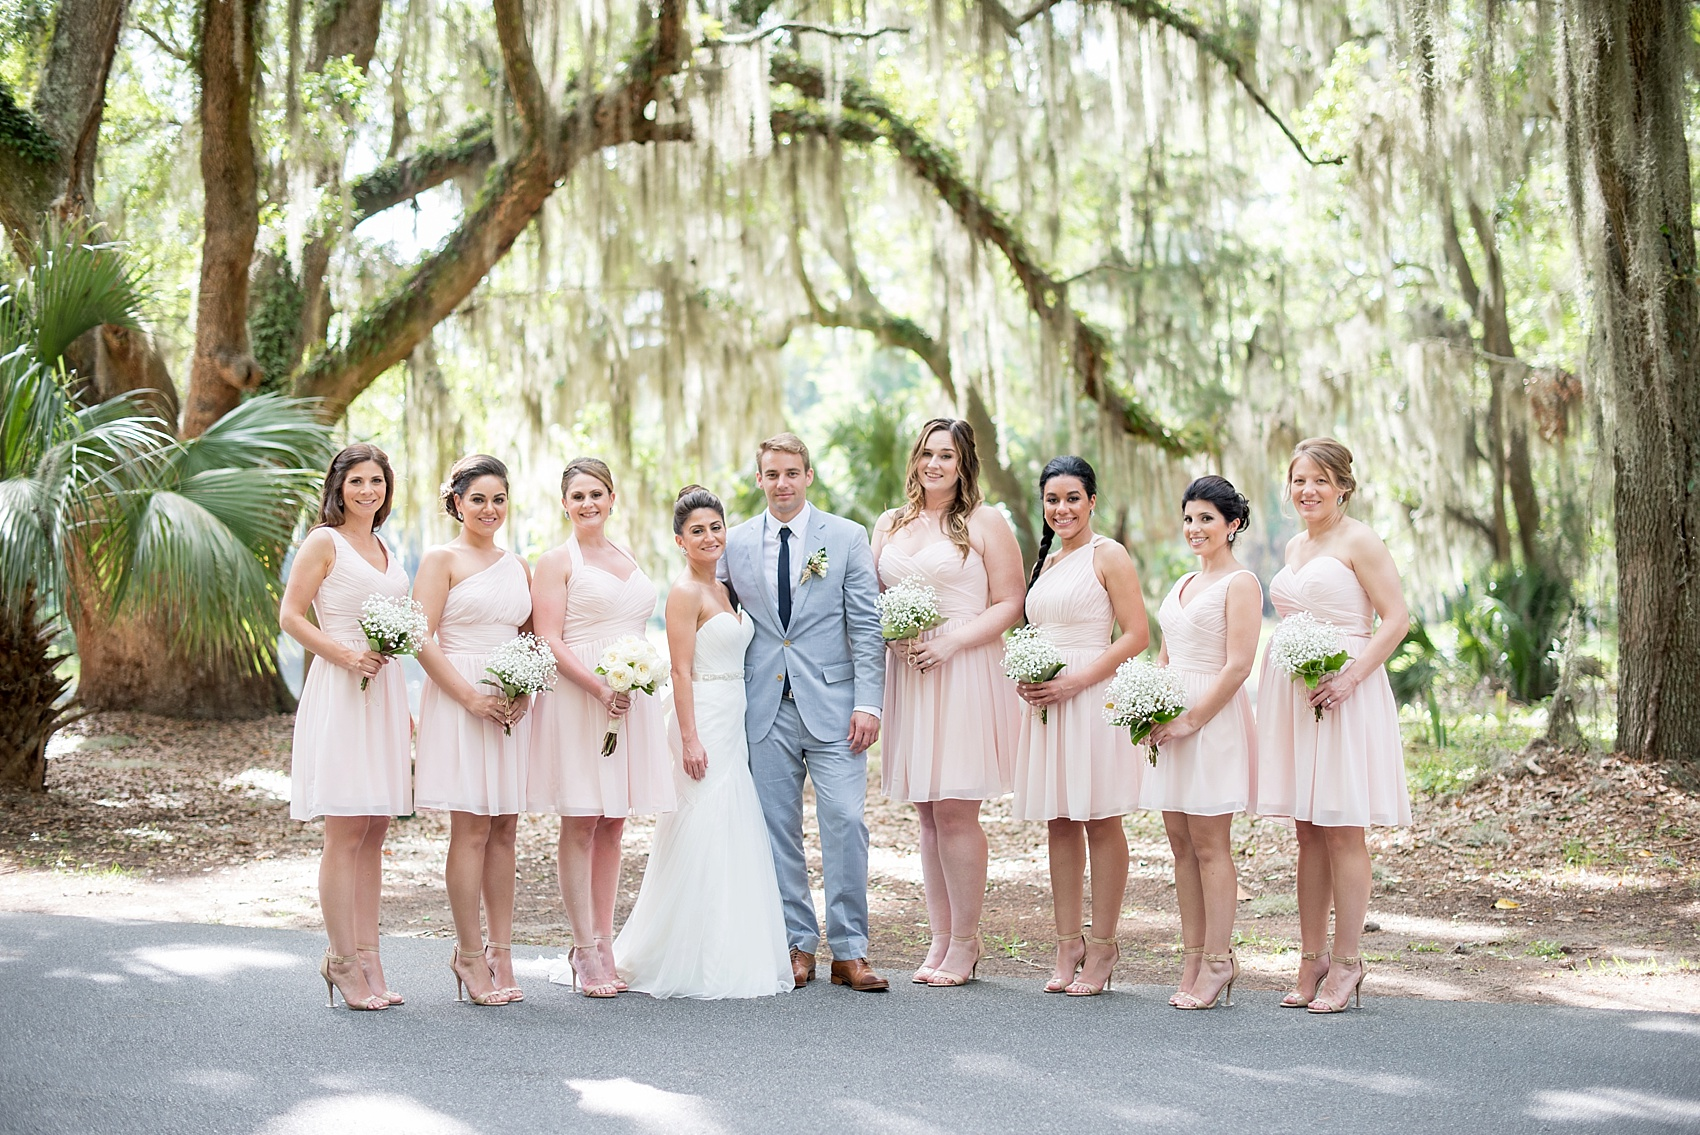 Bridesmaids in short pink Bill Levkoff dresses with Baby's Breath and Magnolia Leaf bouquets. Wedding party at Haig Point, South Carolina, off the coast of Hilton Head. Photos by Mikkel Paige Photography.